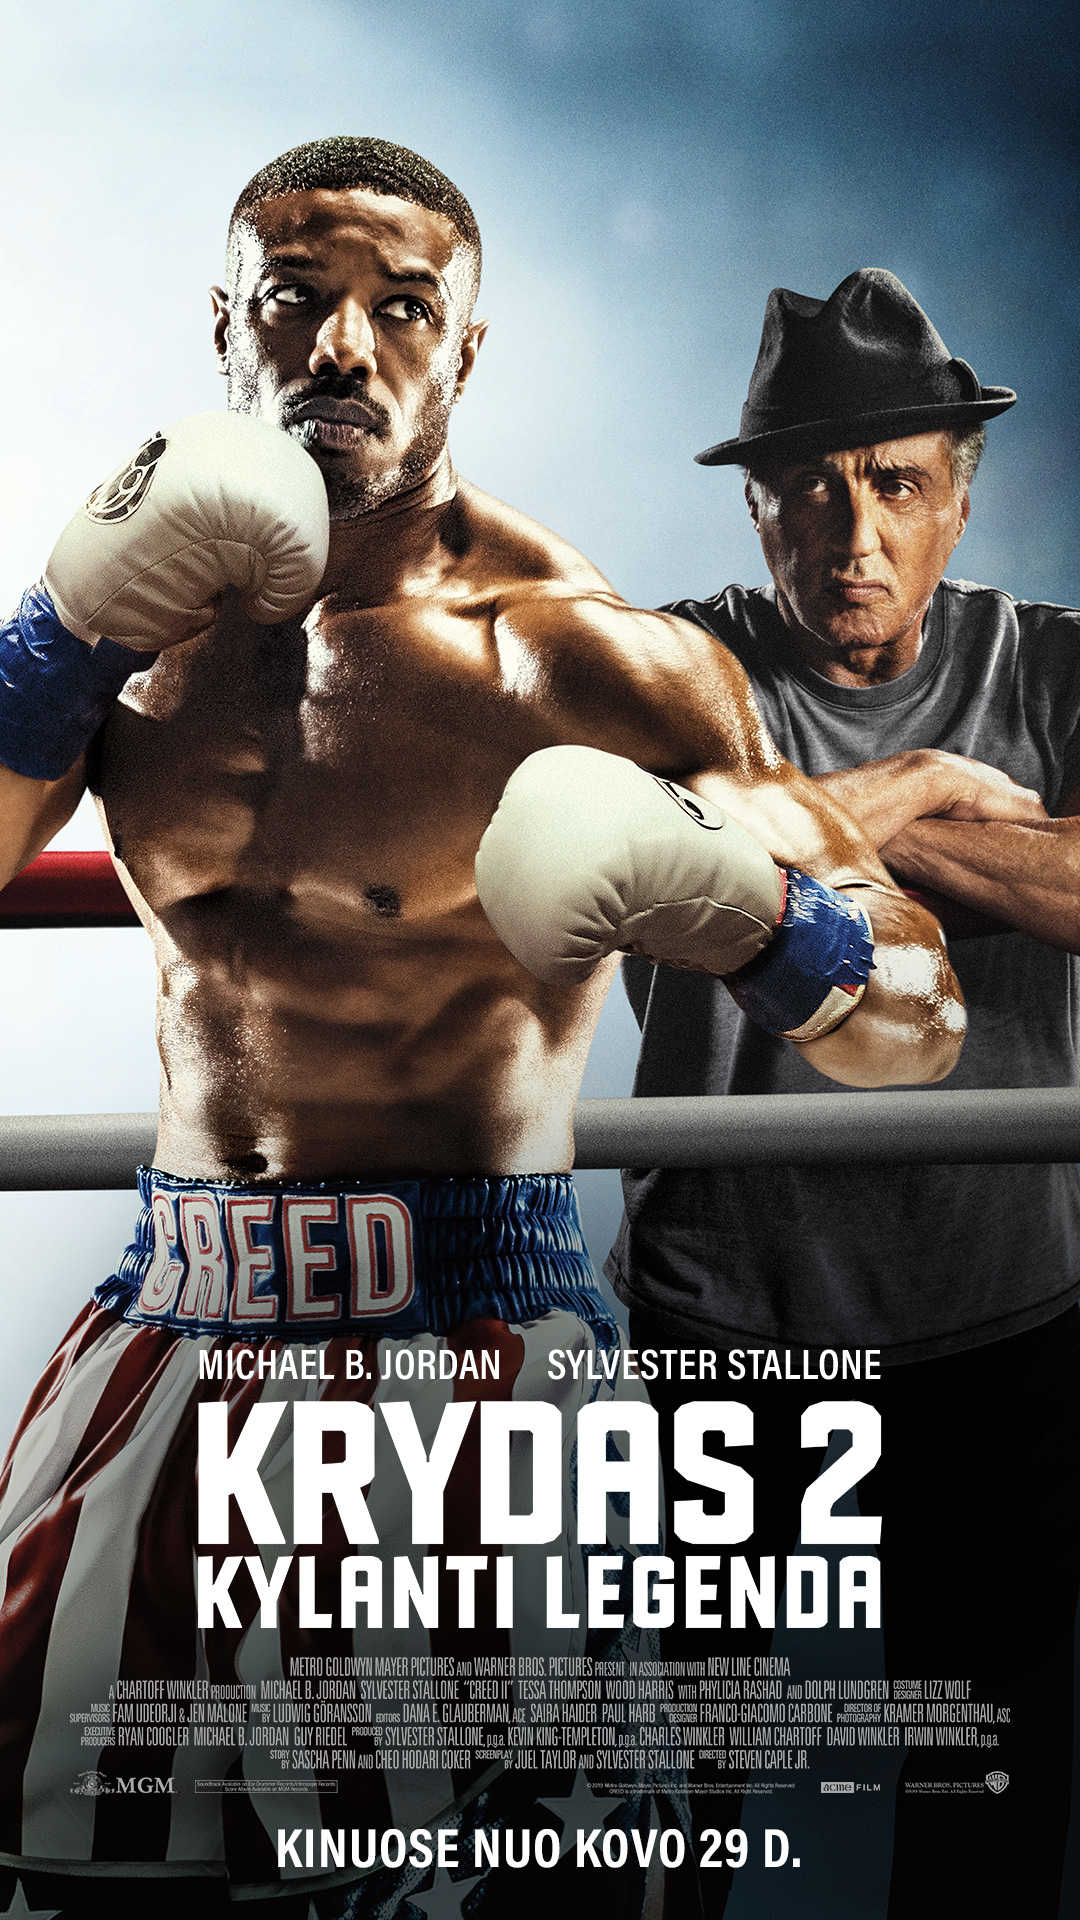 KRYDAS II: KYLANTI LEGENDA (Creed 2)